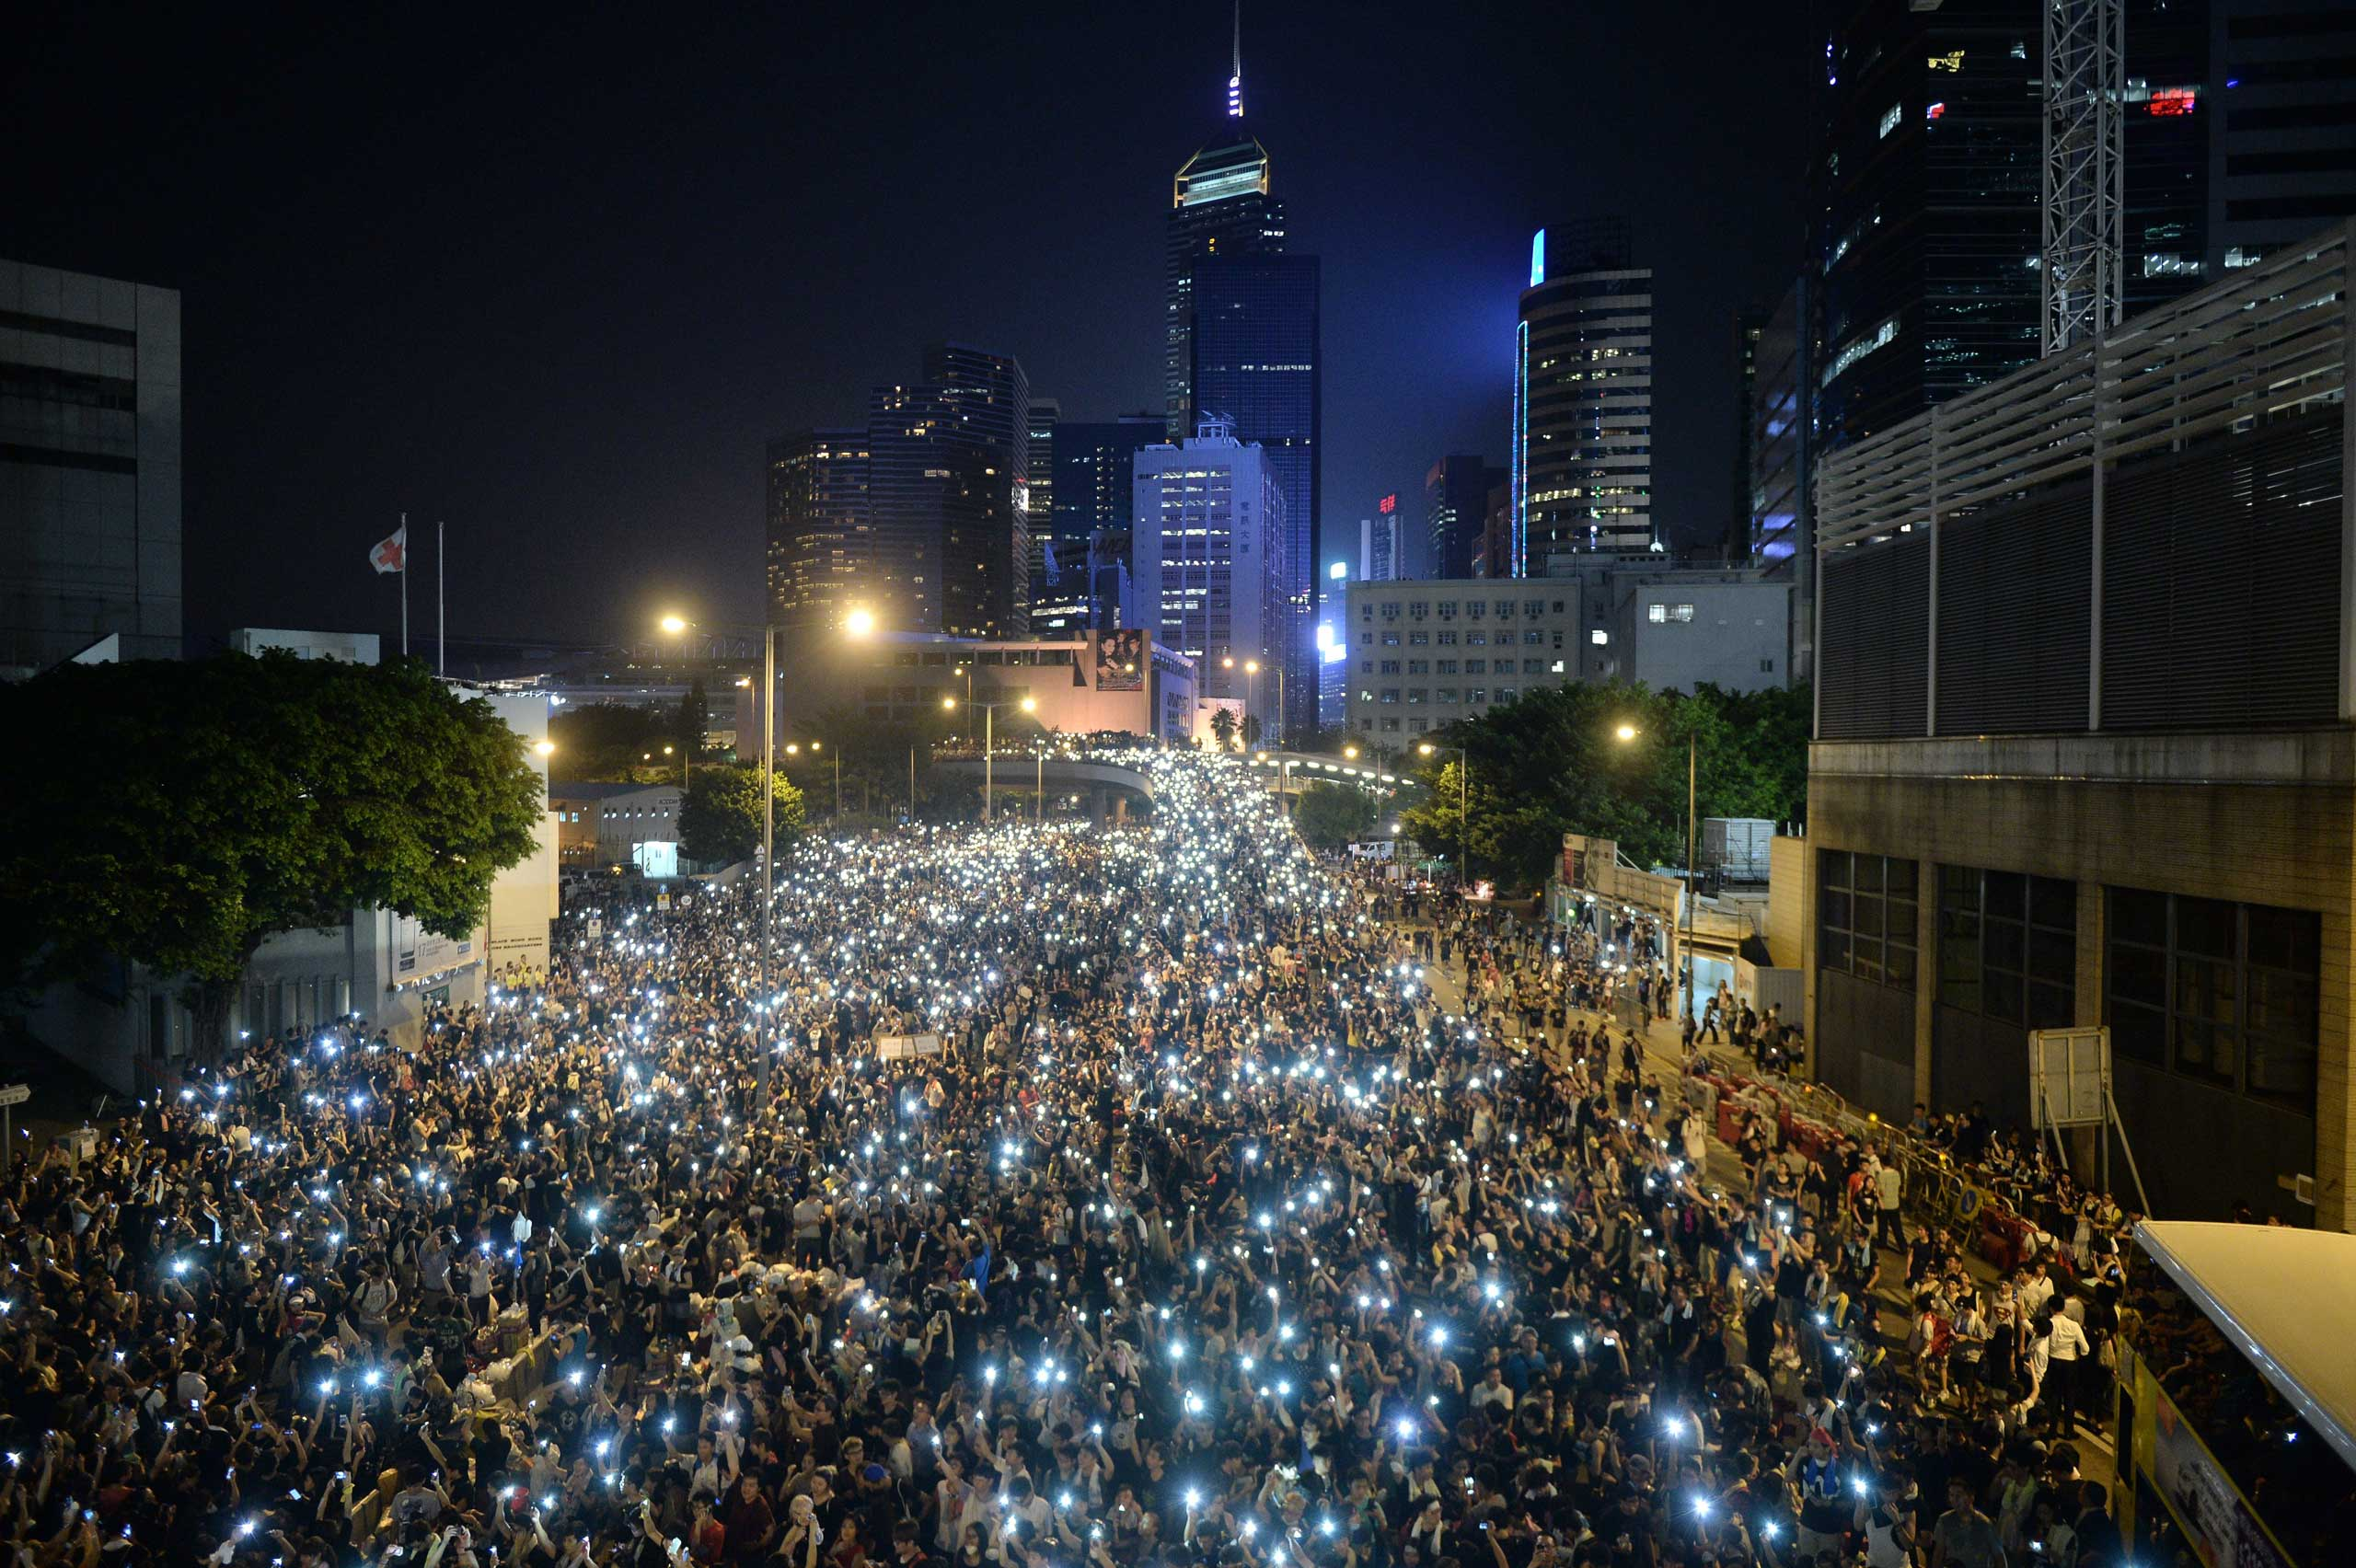 China: Pro-democracy demonstrations in Hong Kong Protesters hold up their mobile phones during a protest near the Hong Kong government headquarters on Sept. 29, 2014.